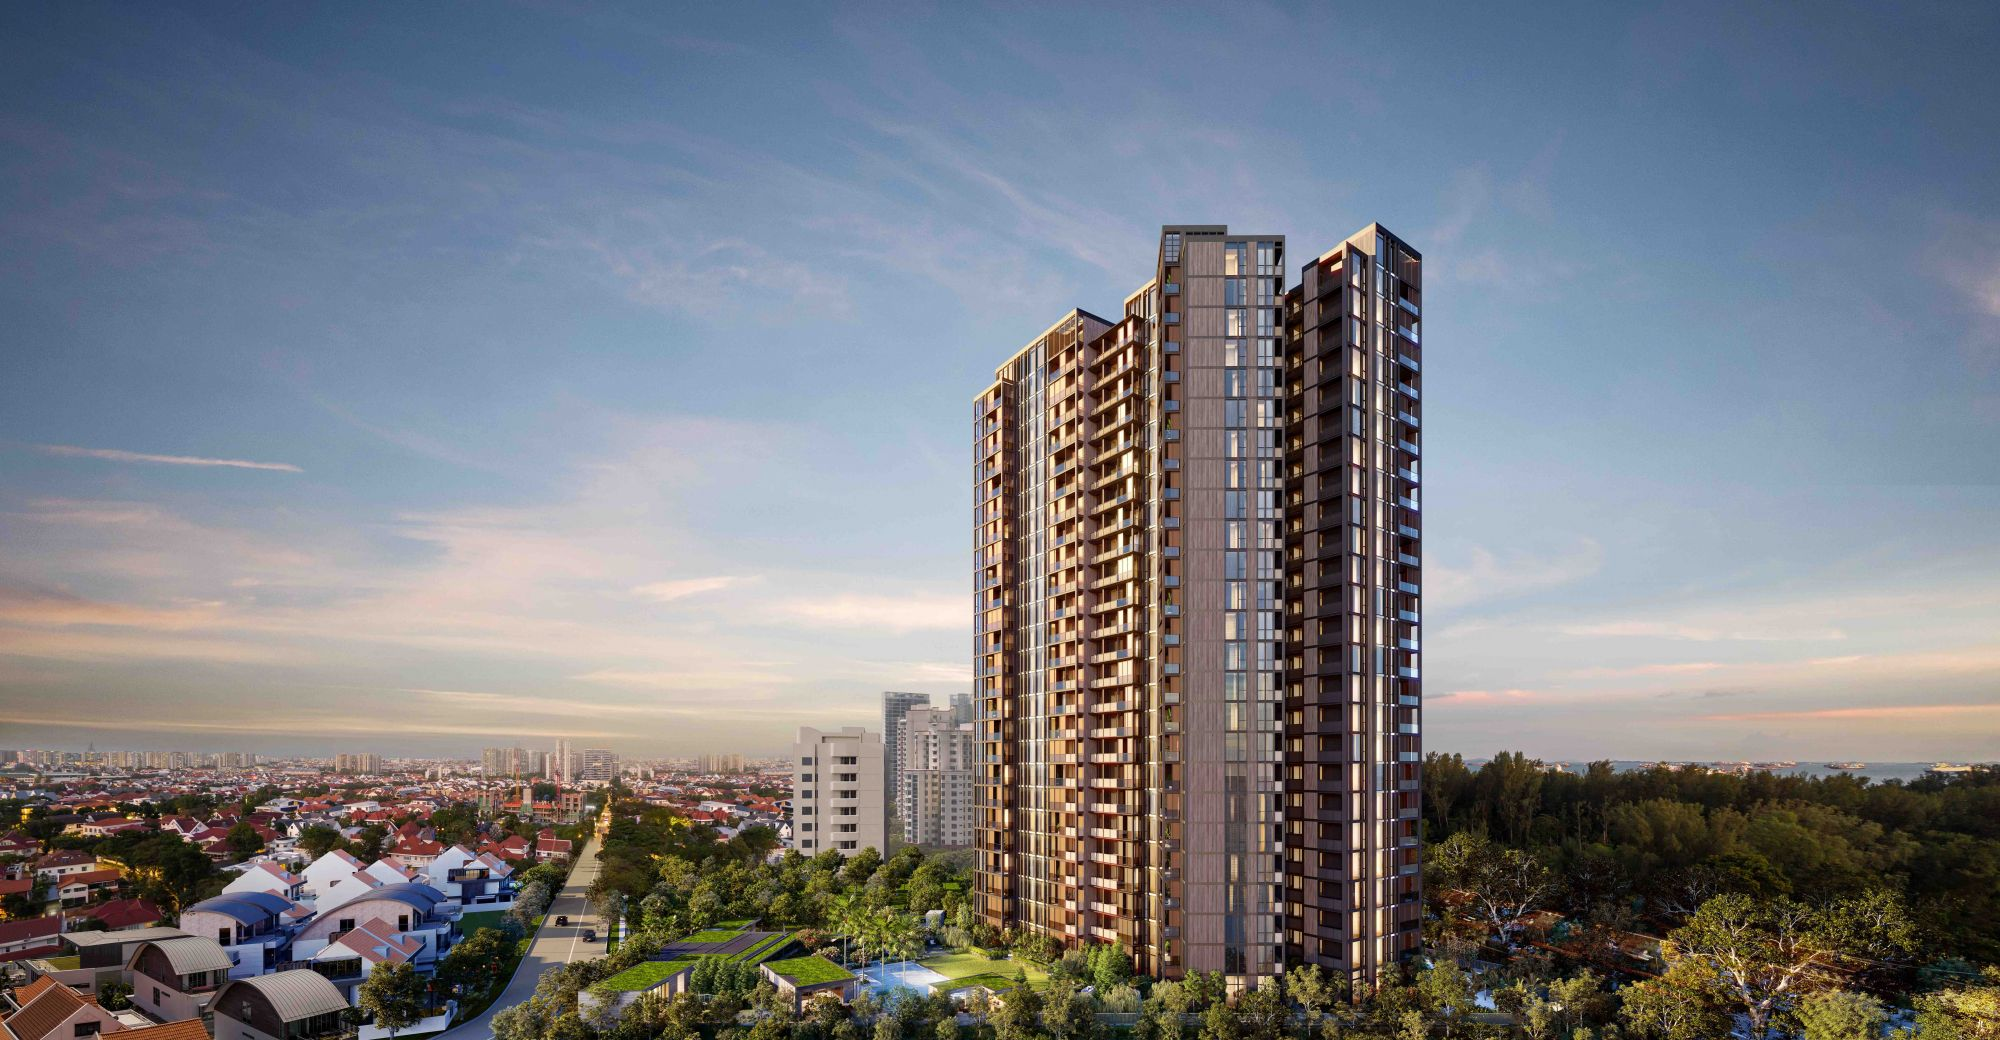 Green areas such as gardens and communal facilities take up 80 per cent of the site area of GuocoLand's latest developments such as Midtown Modern, Martin Modern and Mayer Mansion, pictured above. Image: GuocoLand